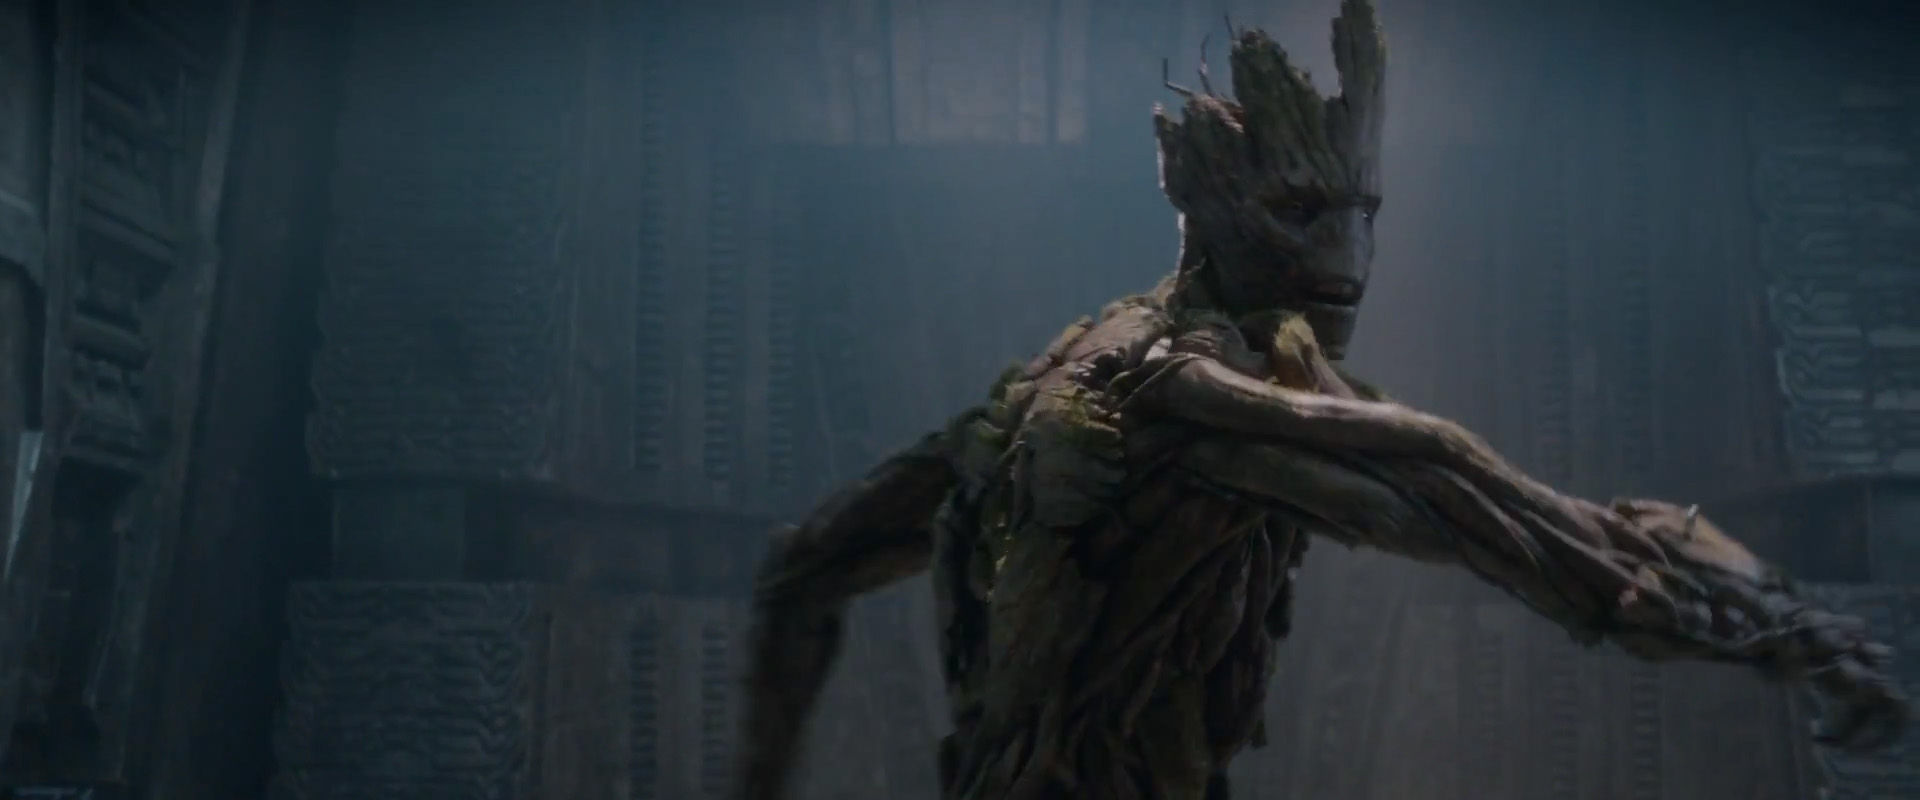 By Stephen Comments Off on Guardians Of The Galaxy Groot Wallpapers 1920x800